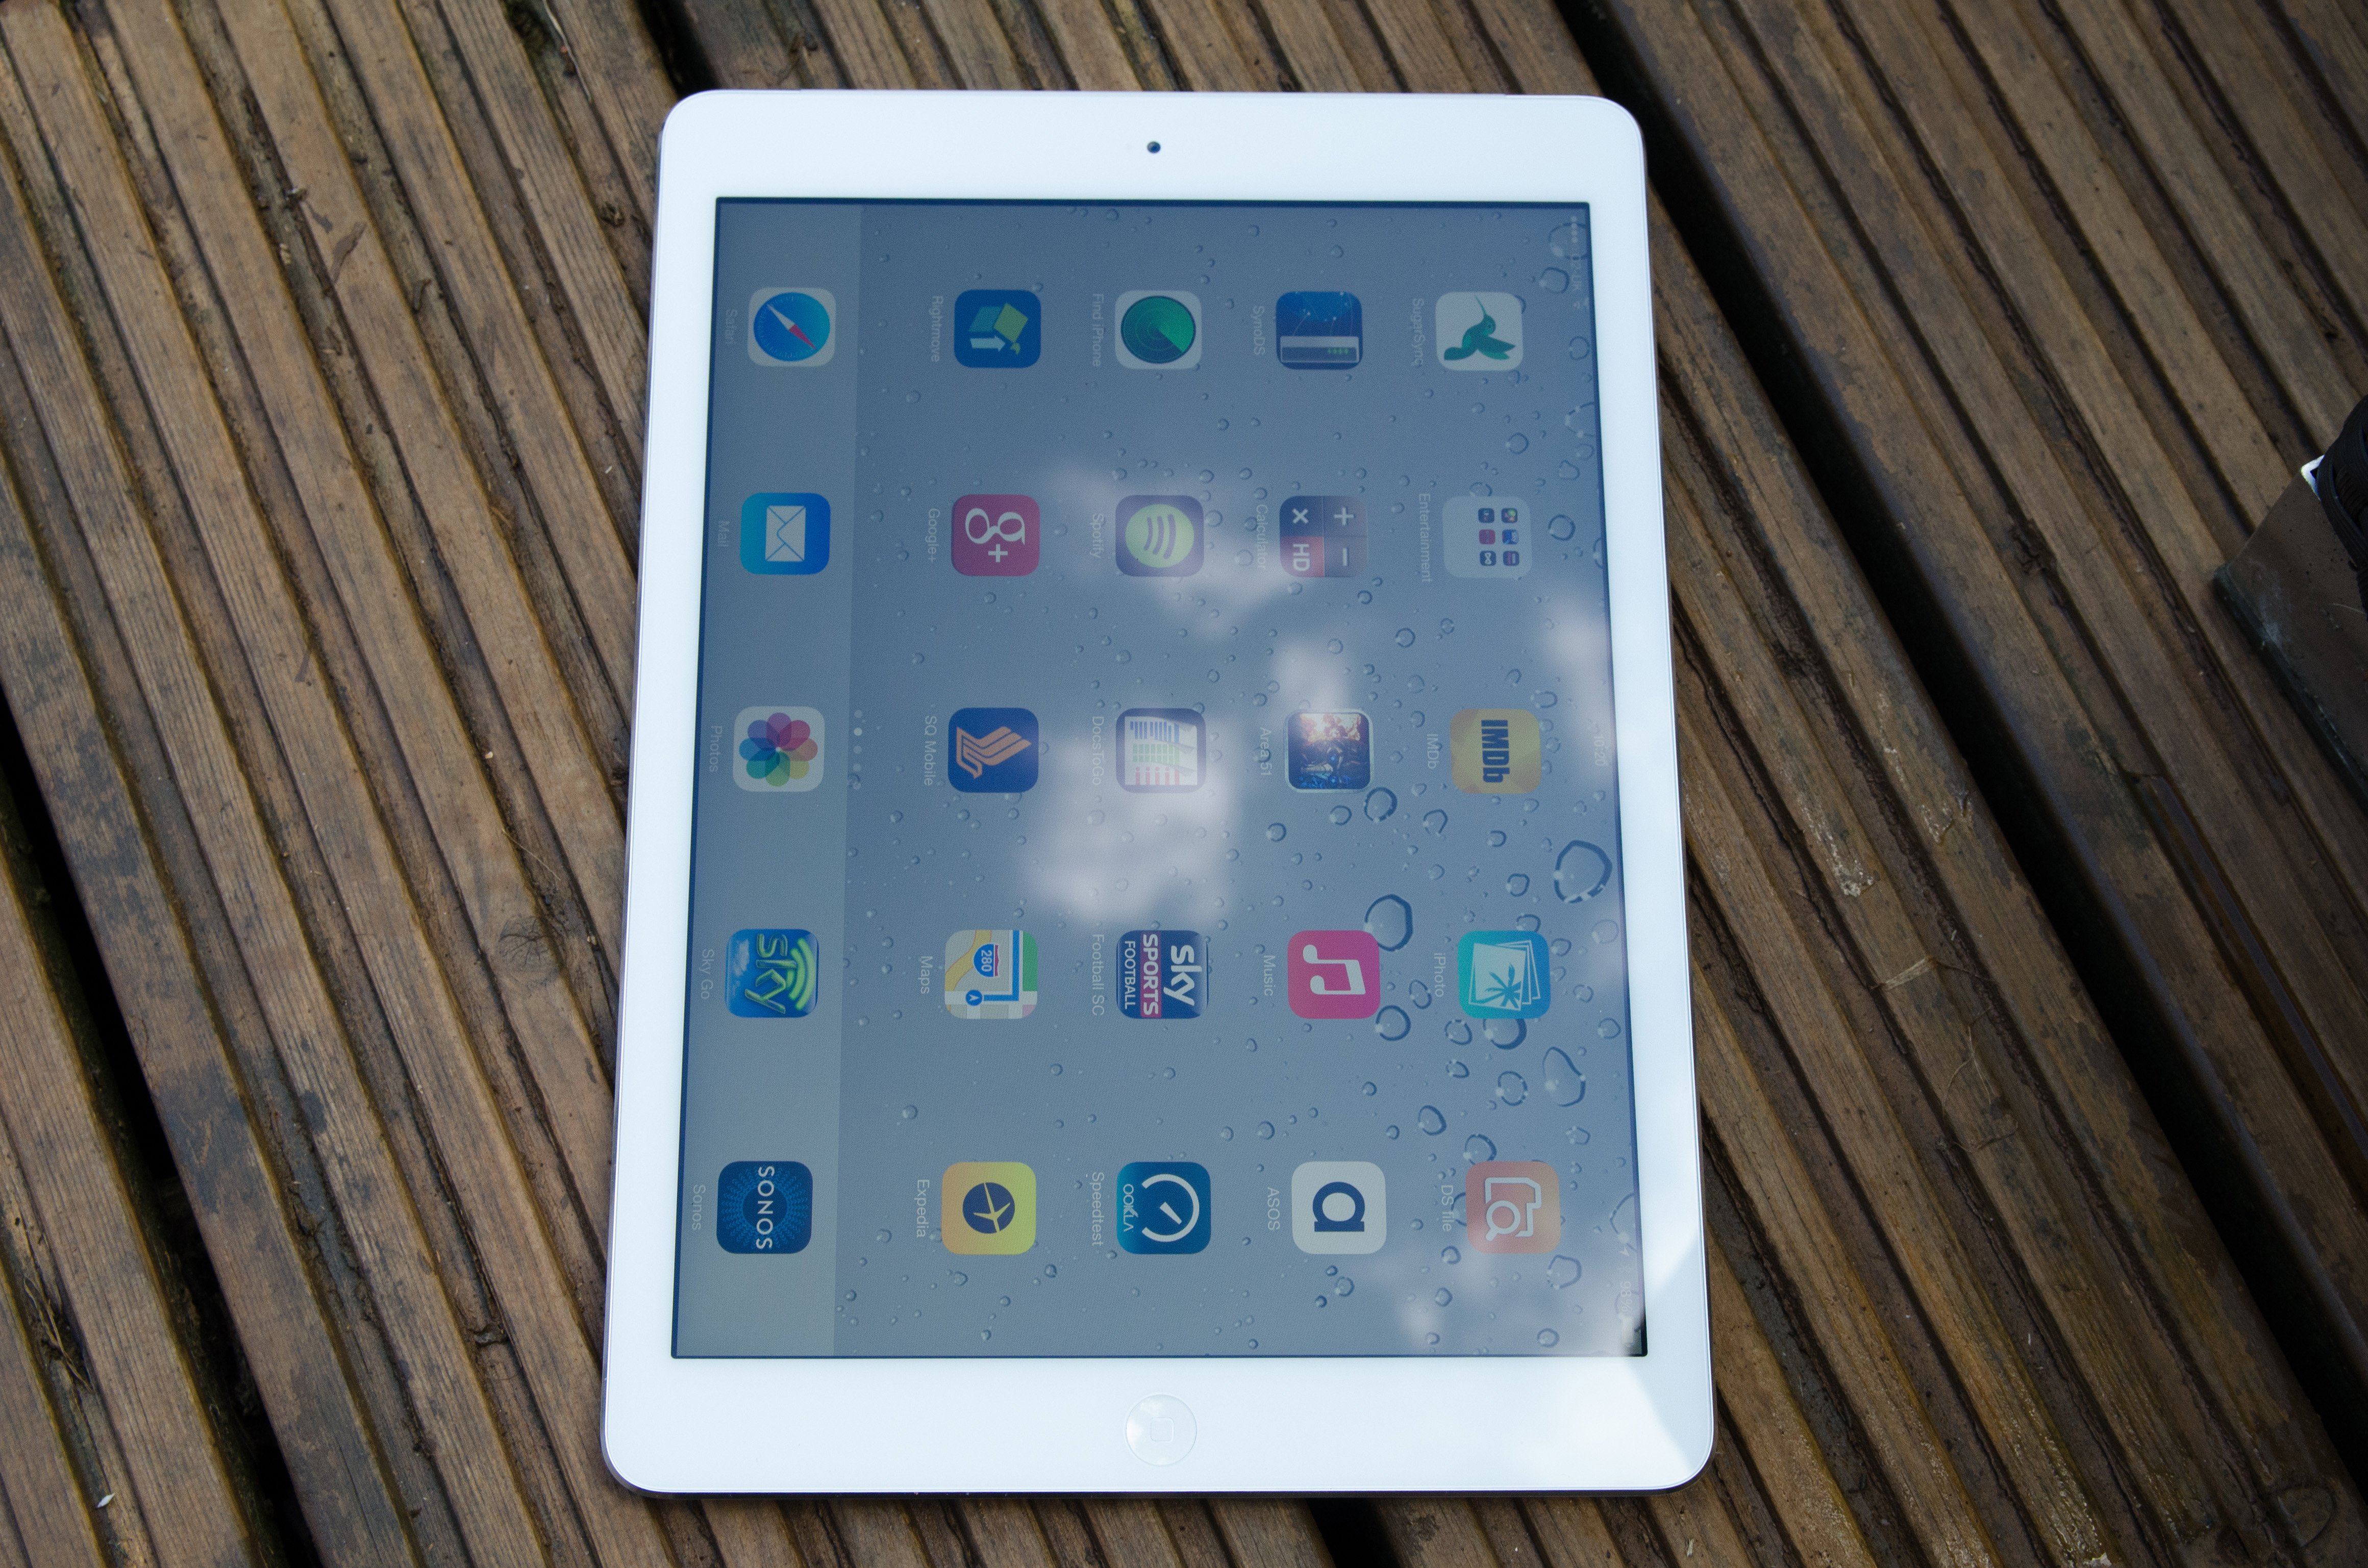 Ipad Air Review Expert Reviews Mini 1 Wifi Cellular 16gb White As Weve Come To Expect The Screen Is Also One Of Best Quality Viewing Angles Are Superb Thanks An Ips Panel Meaning You Can Hold Tablet At